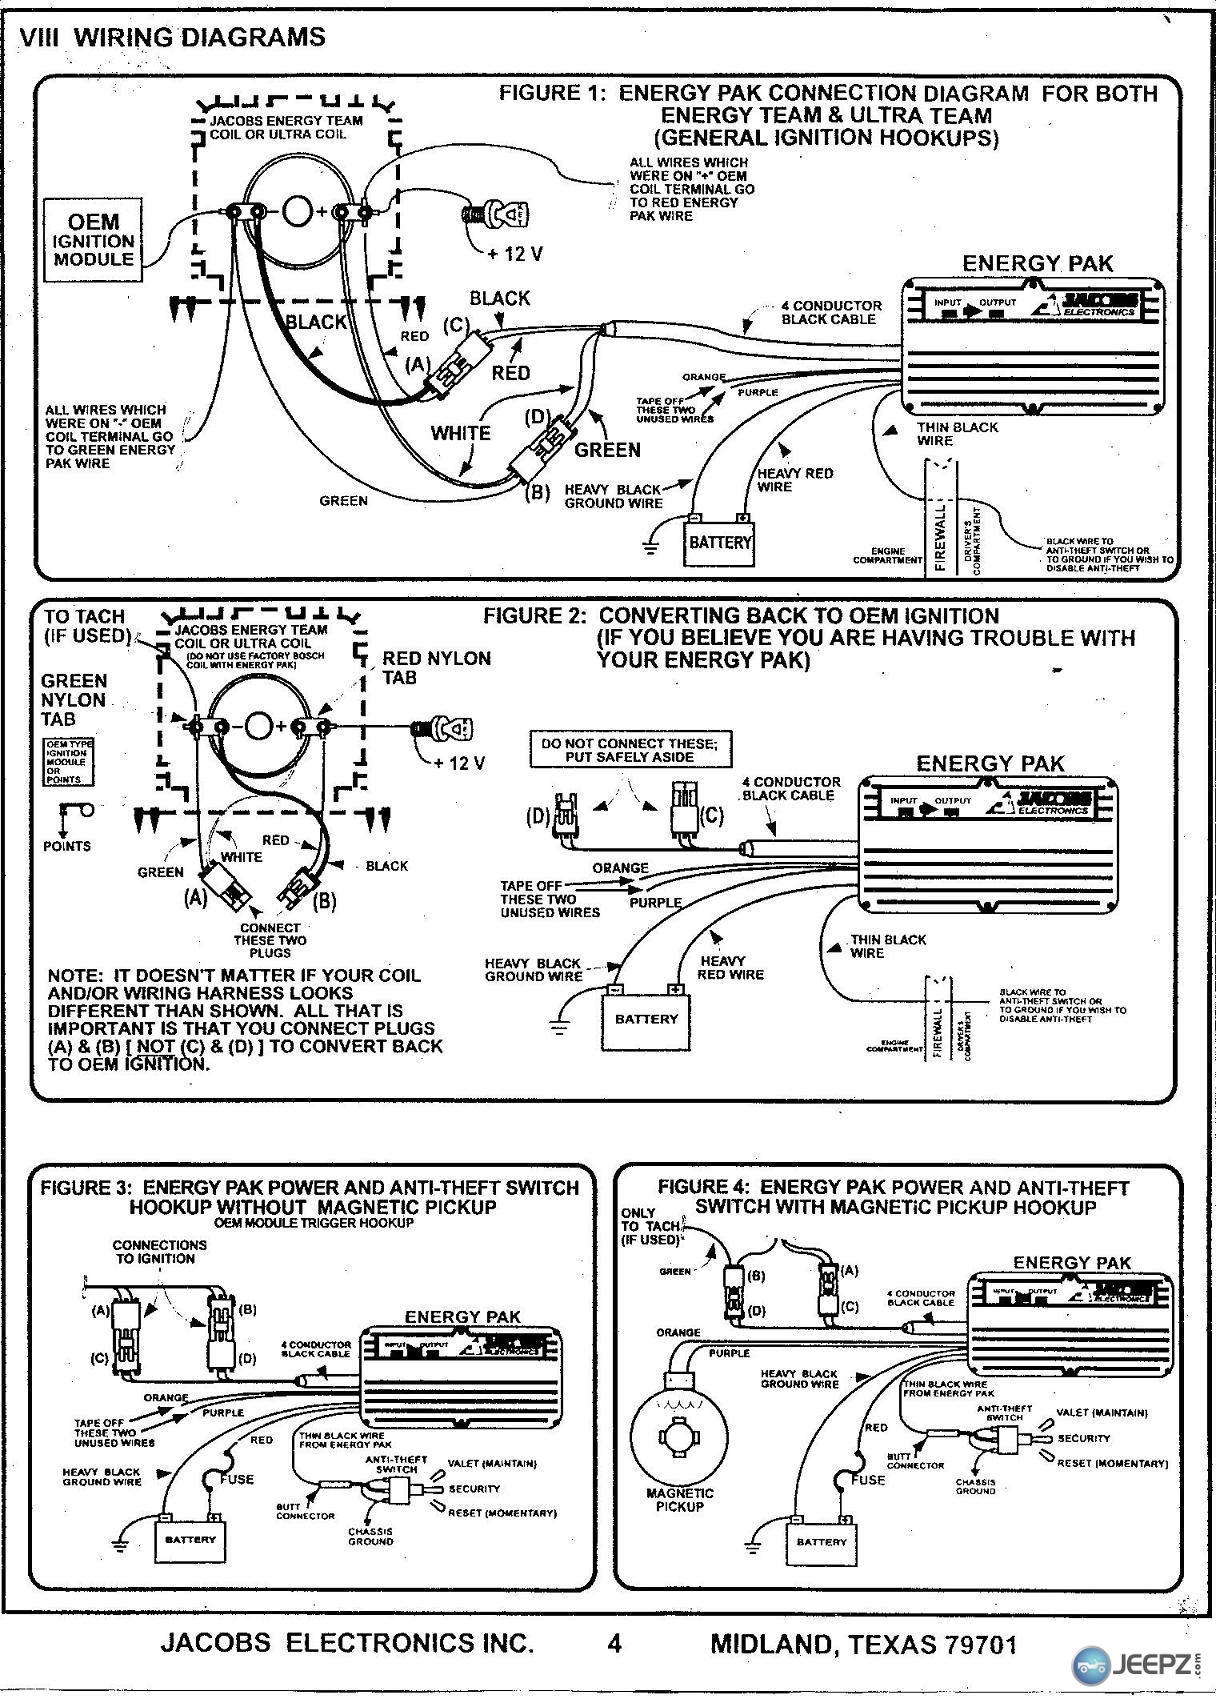 2965d1246241329-jacobs-ignition-jeepz-jacobs-ignition-diagram Jacobs Ignition Wiring Diagram Ford on coil diagram, auto ignition diagram, electronic ignition diagram, toyota ignition tumbler diagram, jacobs pro street ignition computer, stihl chainsaw ignition kill switch diagram, ignition system diagram,